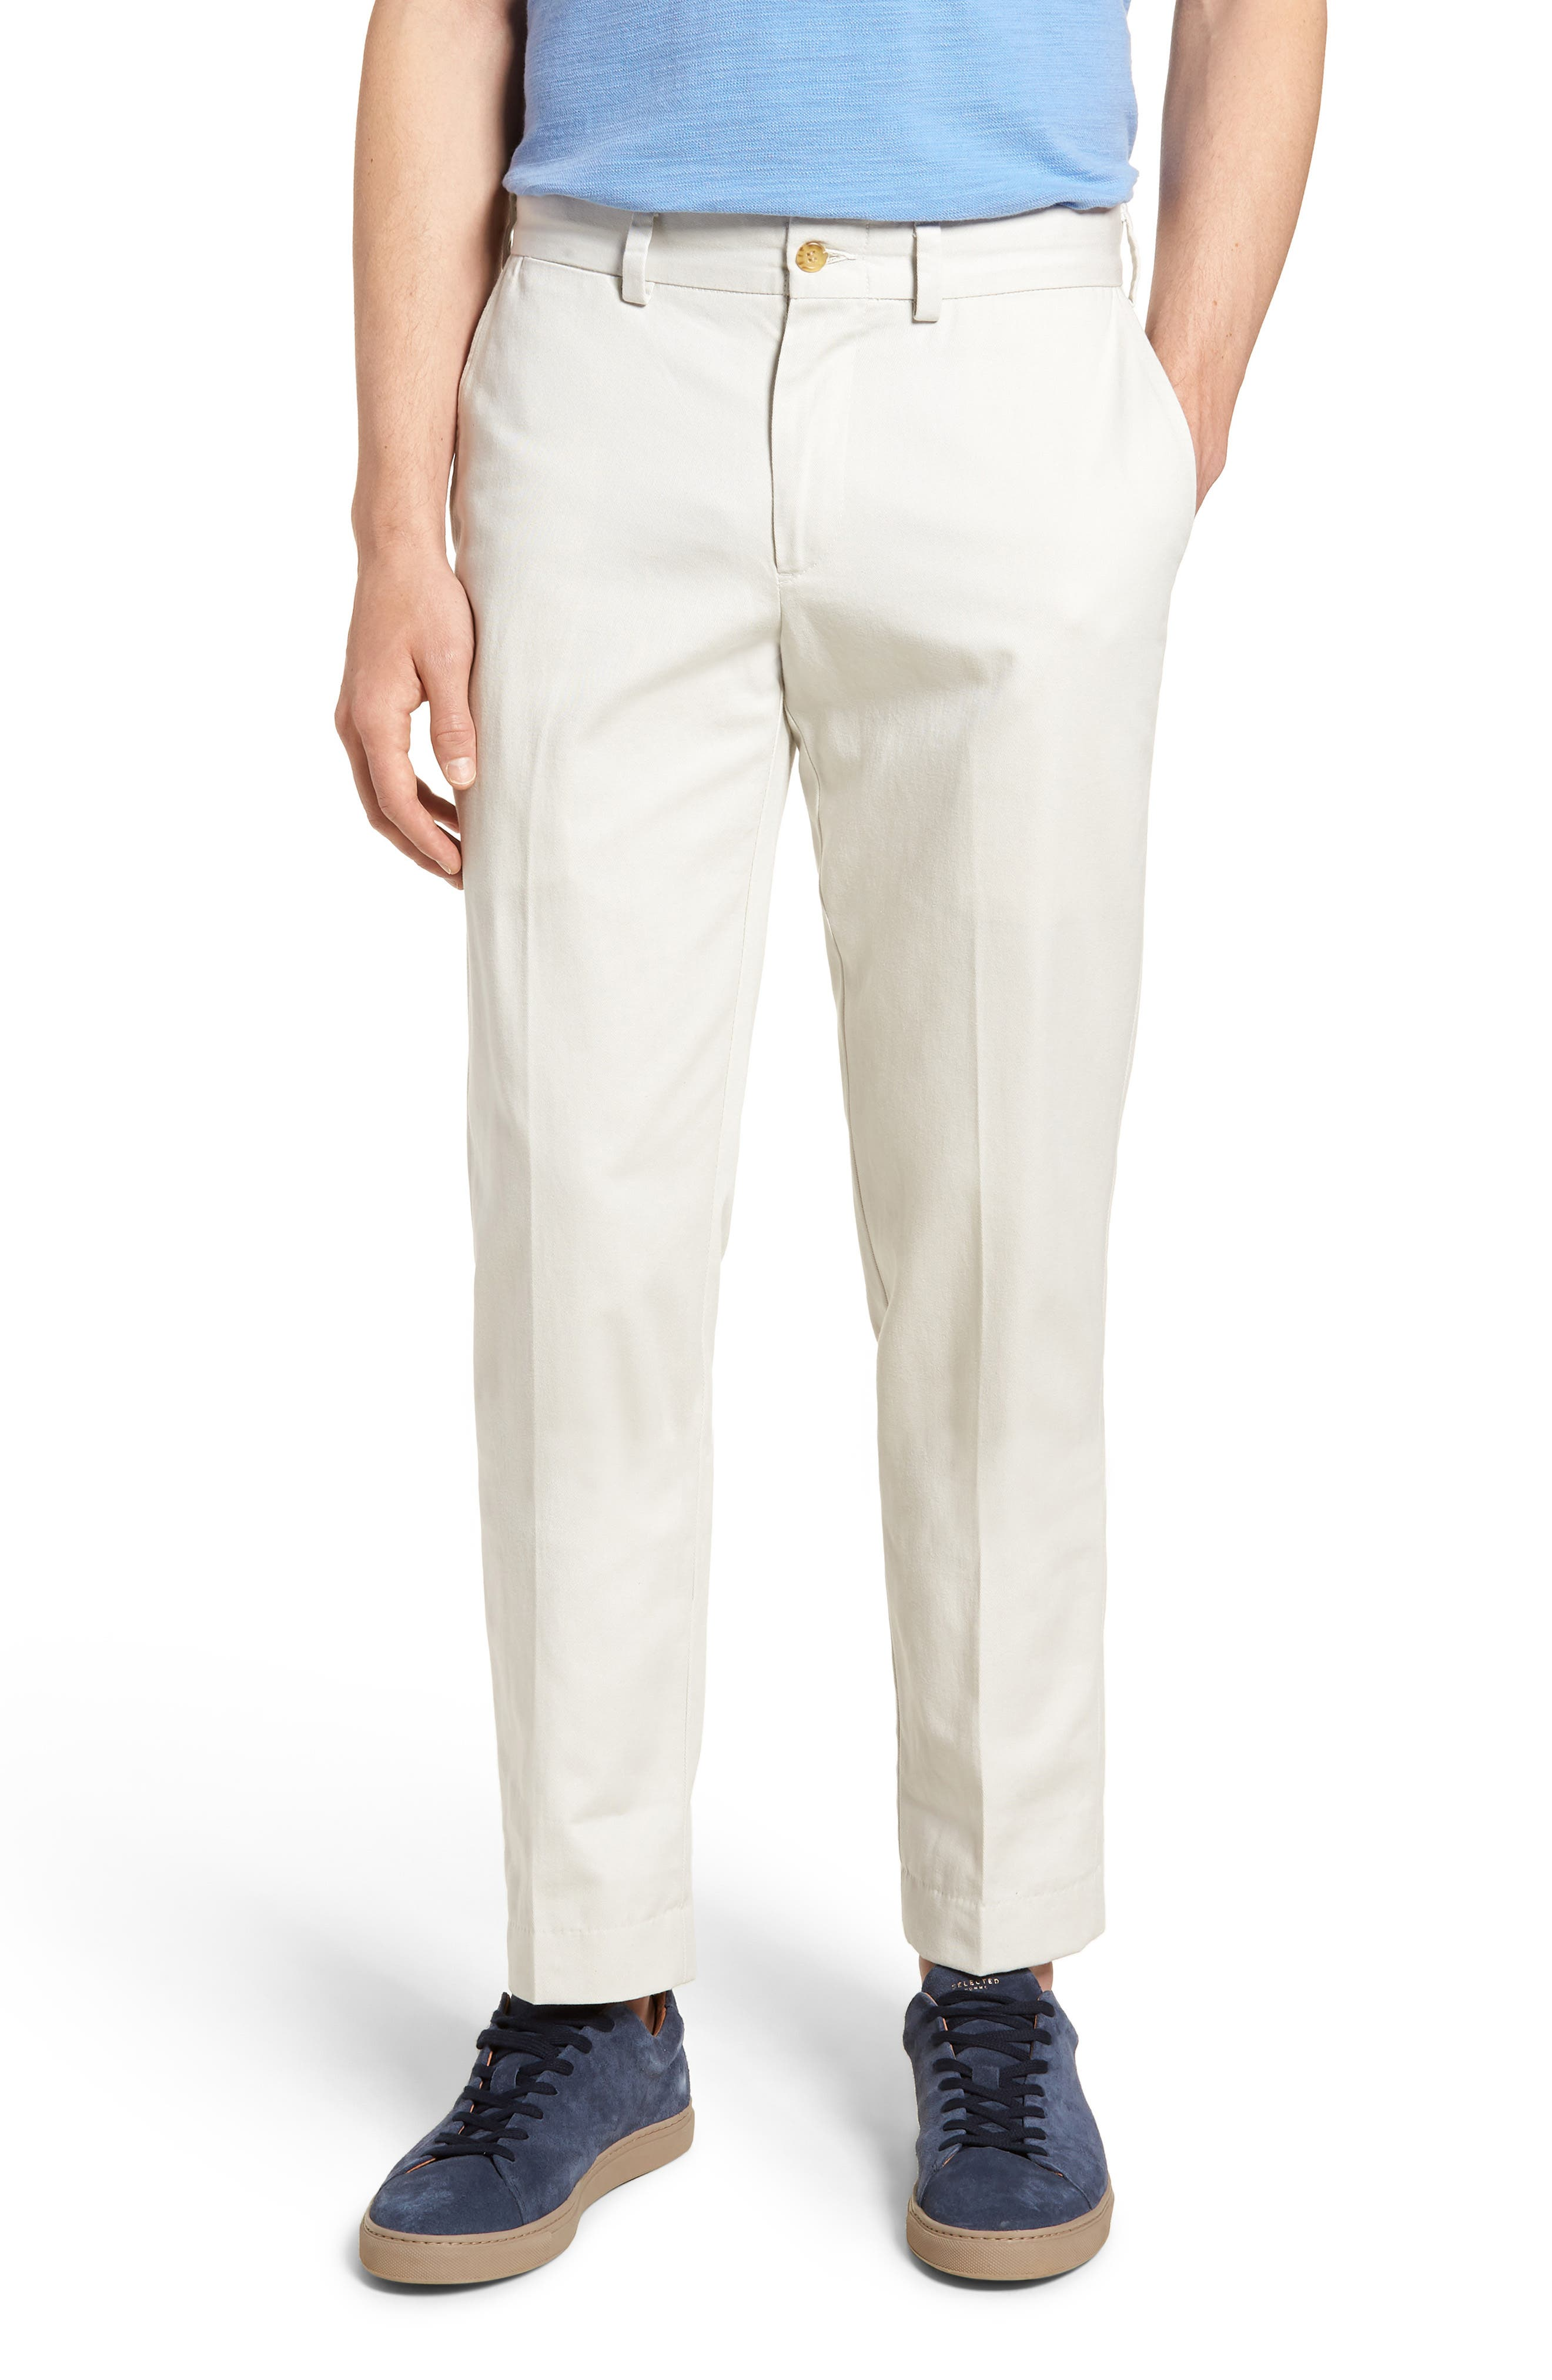 M3 Straight Fit Flat Front Vintage Twill Pants,                         Main,                         color, 270